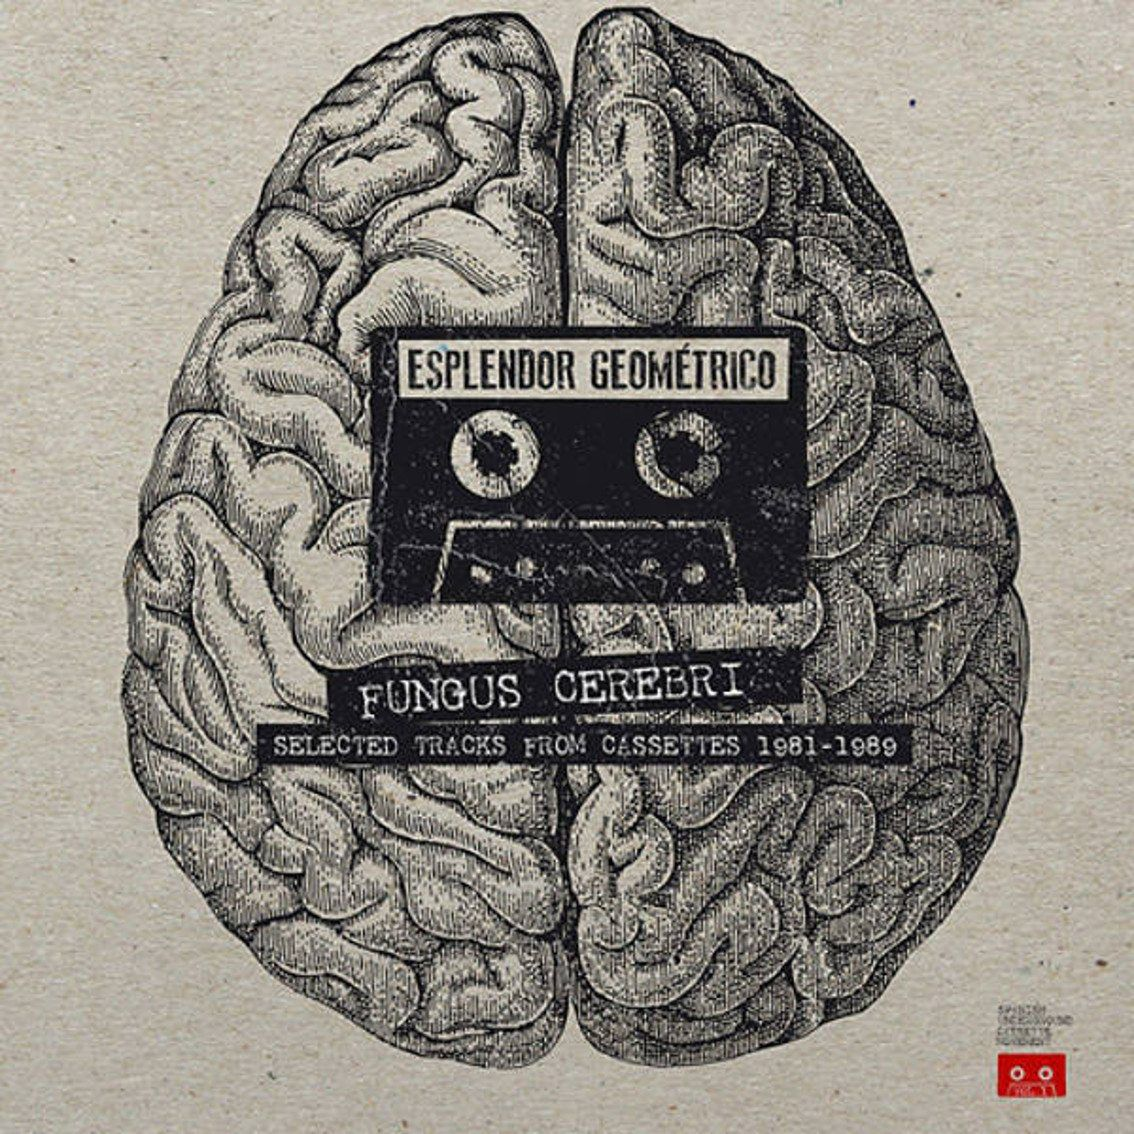 Esplendor Geométrico sees 80s tape material released on double vinyl LO:'Fungus Cerebri (Selected Tracks From Cassettes 1981-1989)'